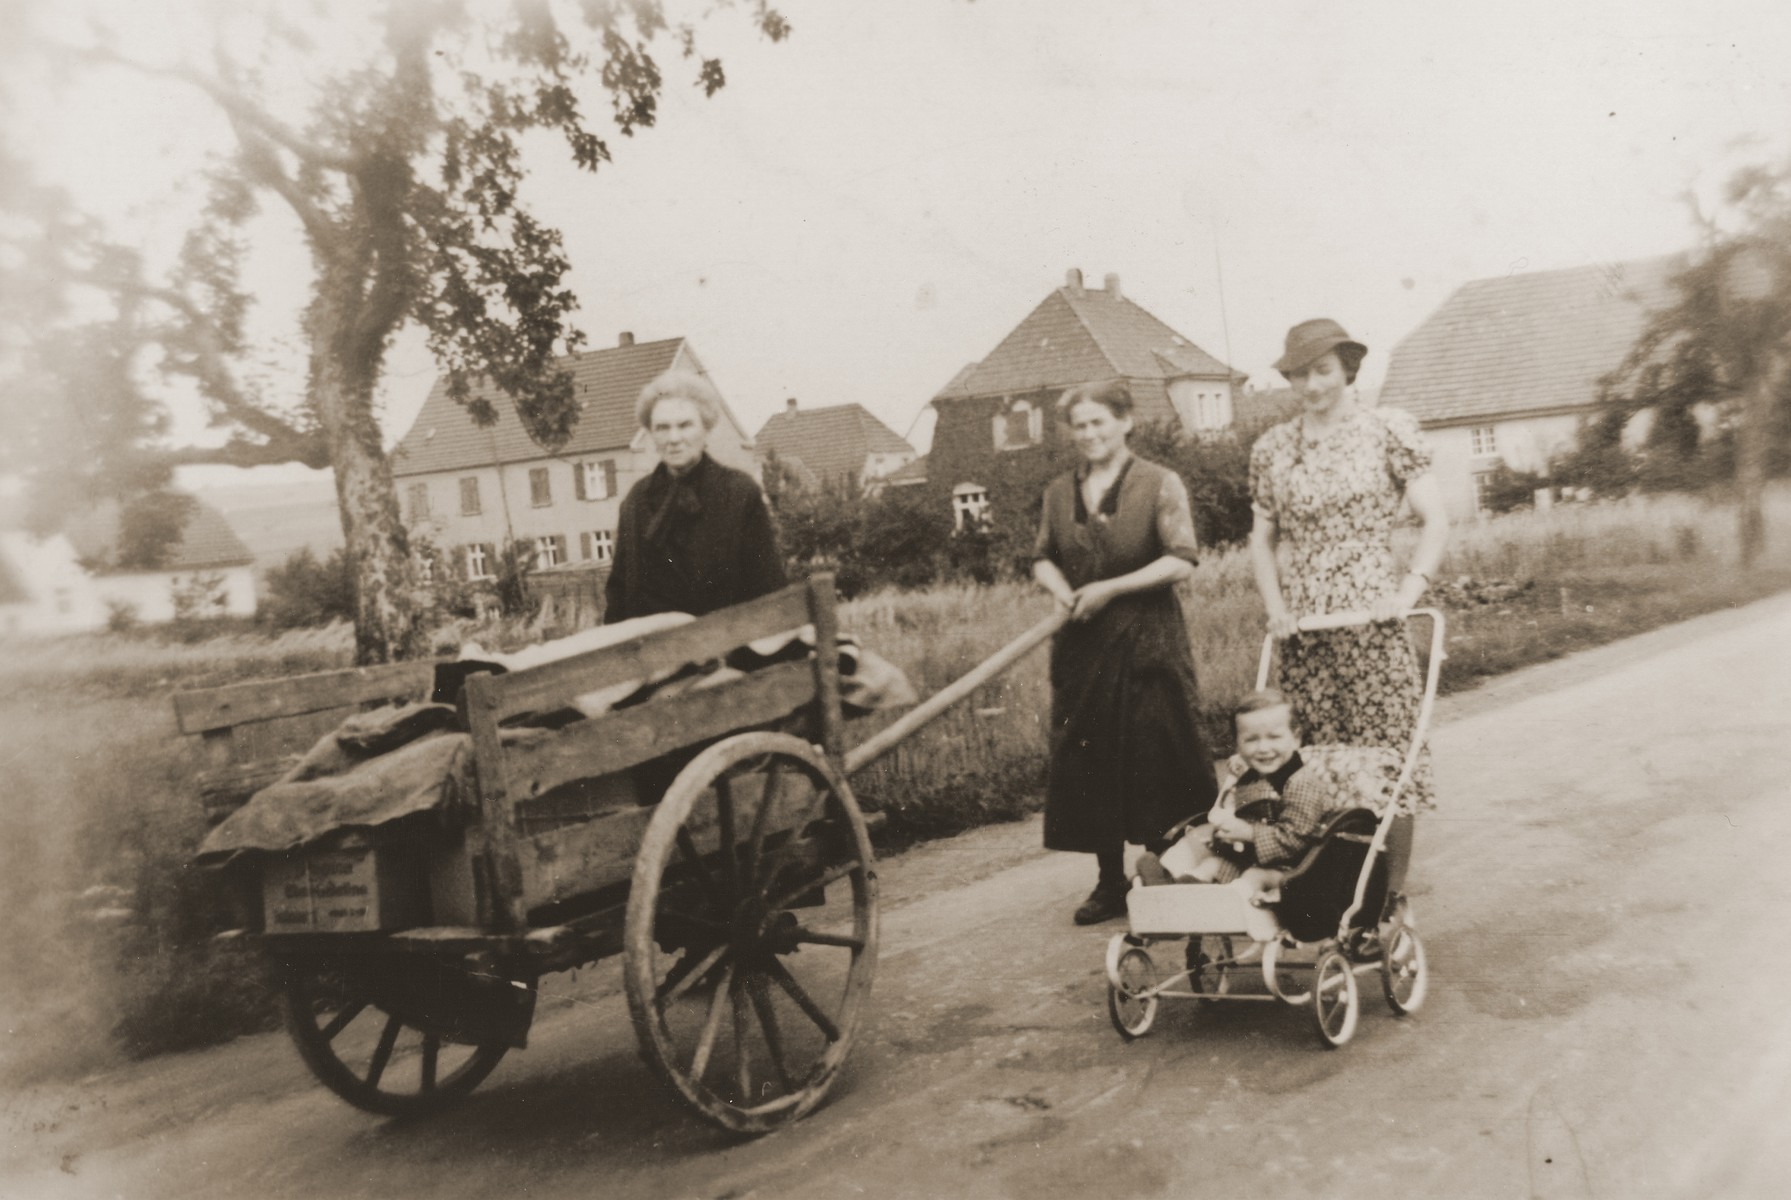 Mathilde Stern walks down a Willebadessen street with her sister-in-law, Rosa Stern (pushing cart), and daughter-in-law, Resi Markhoff Stern, who is pushing her son, Manfred, in a stroller.